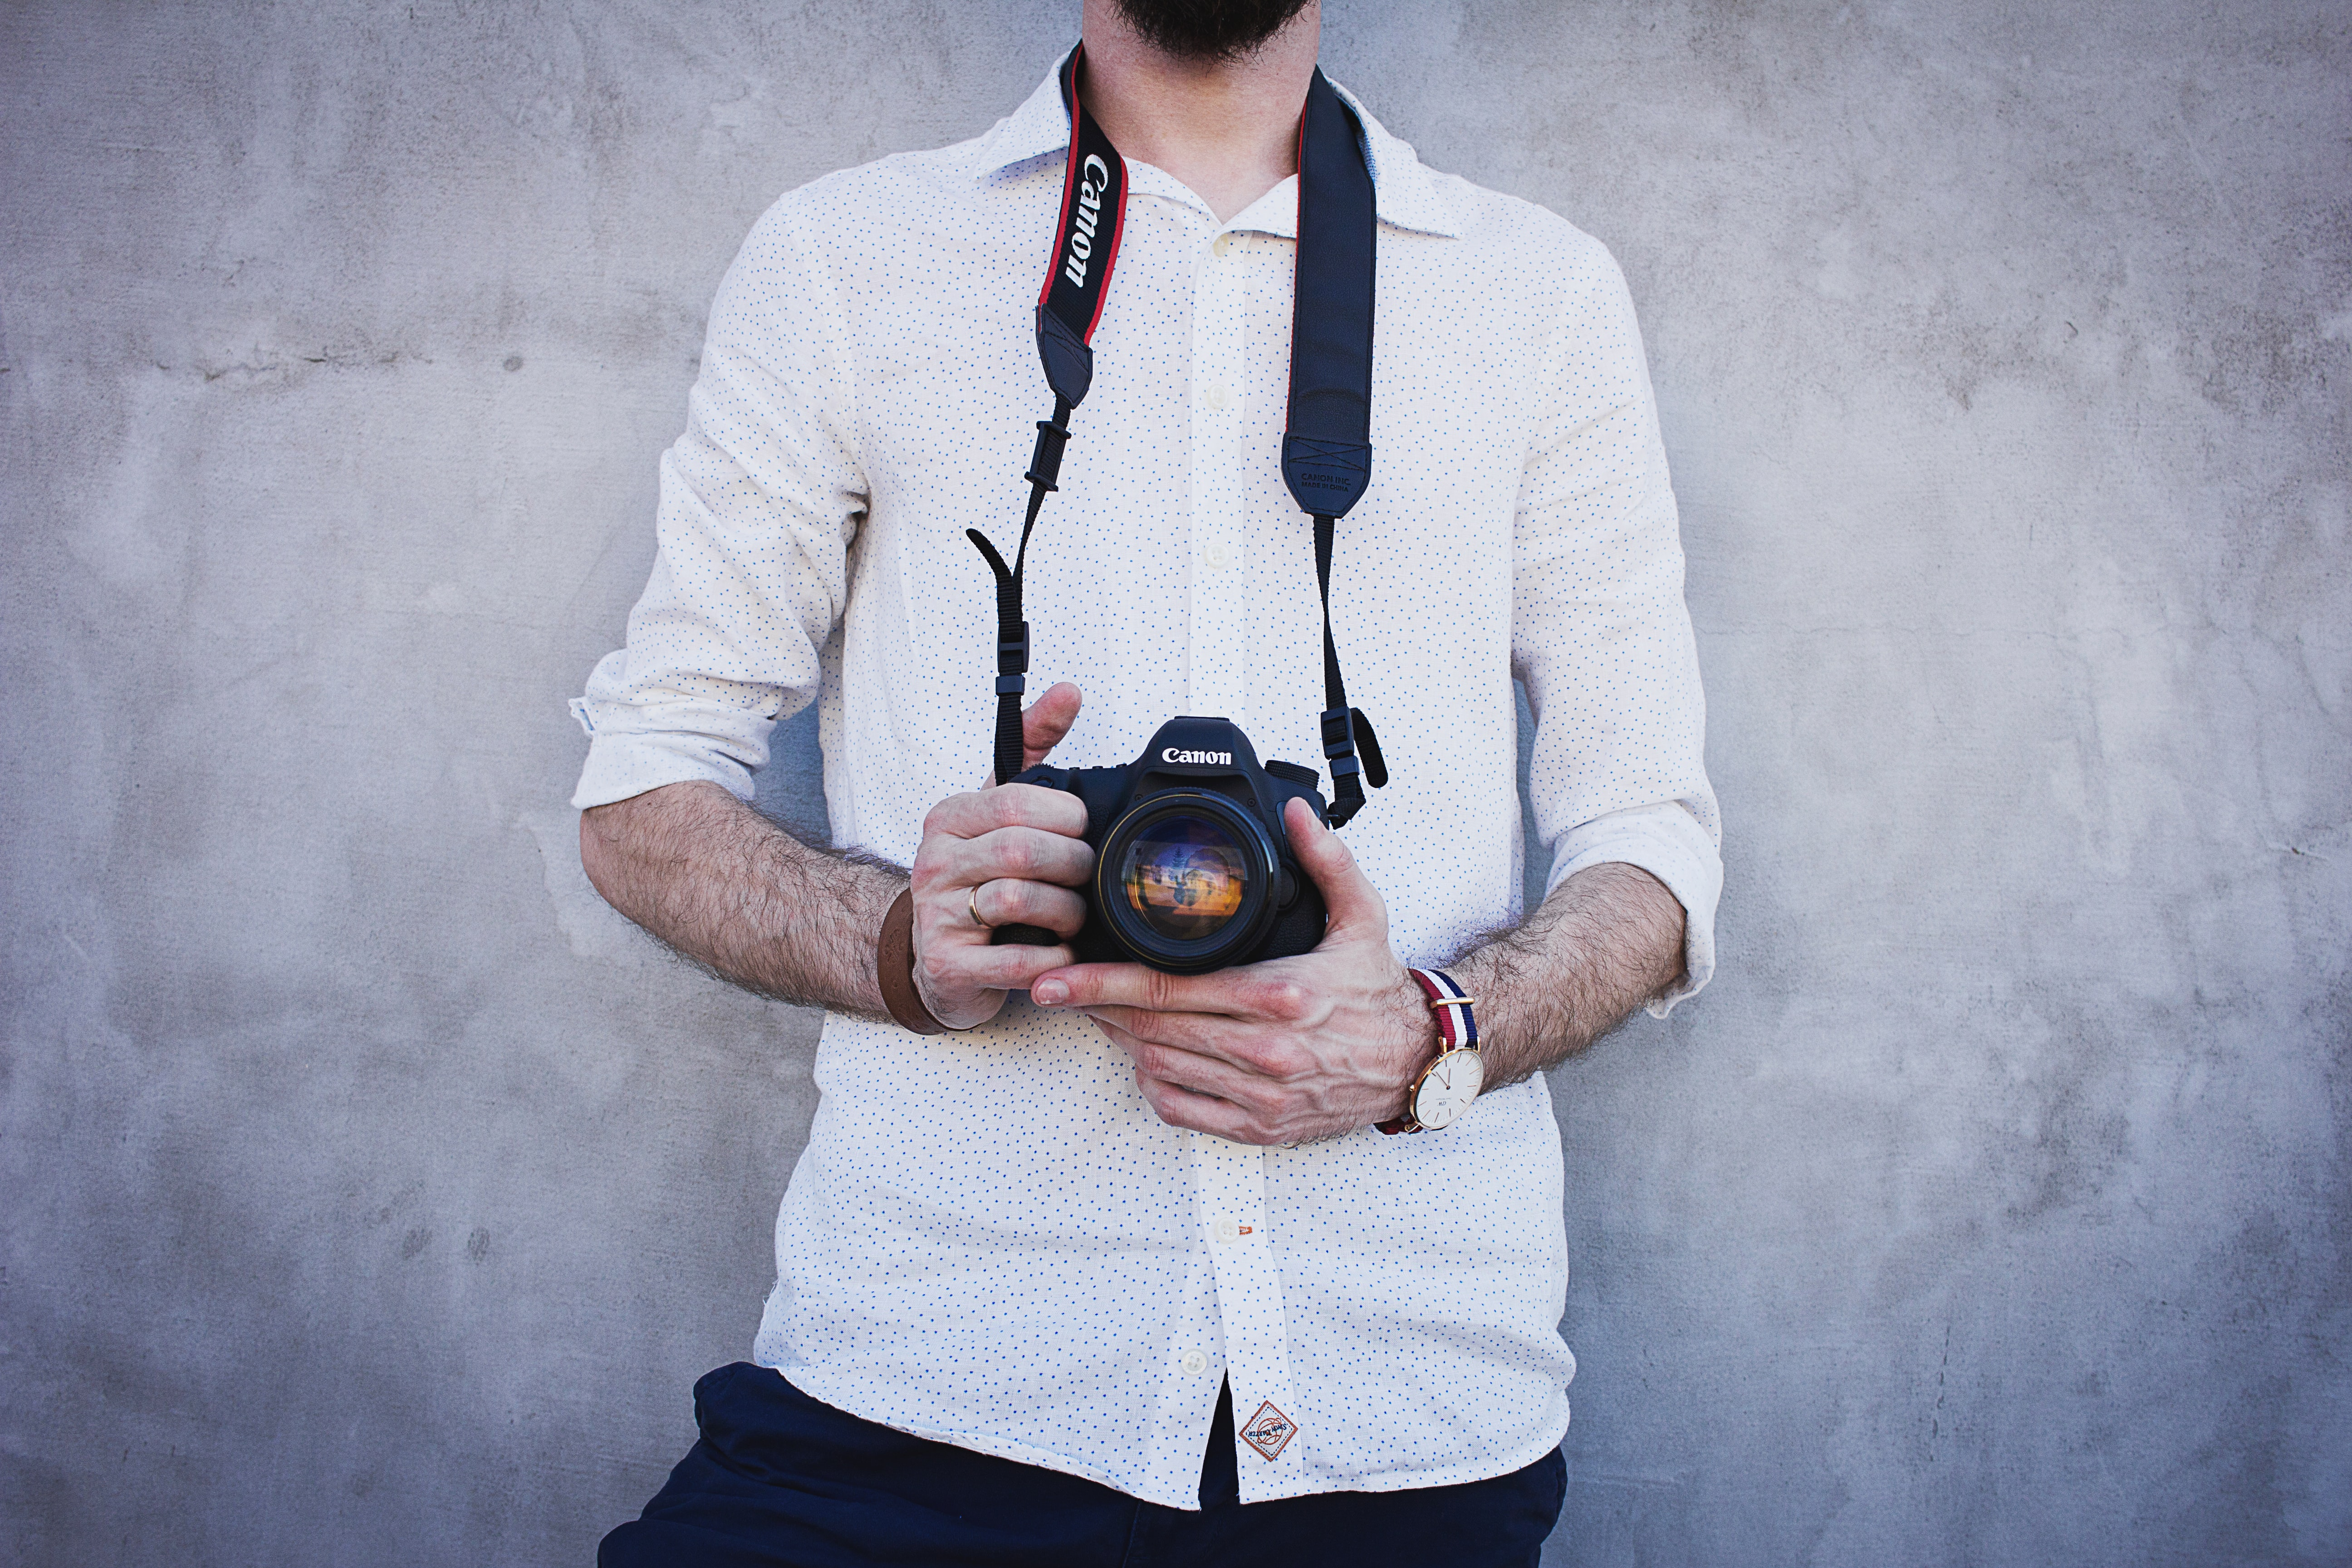 A man in a white polka dotted shirt holding a Canon camera in Olsztyn